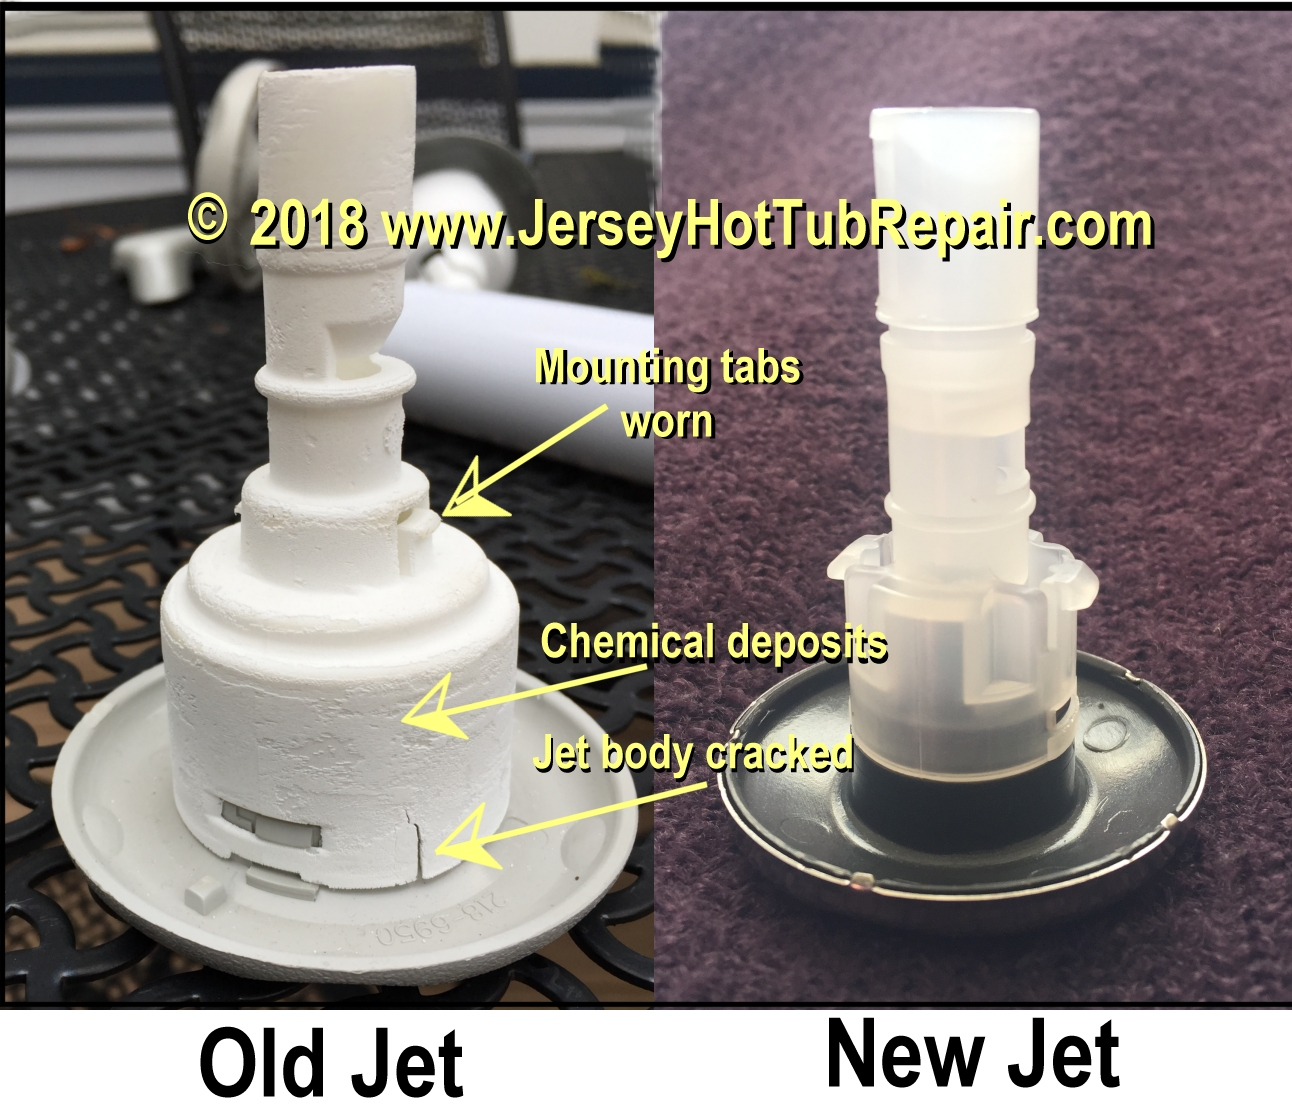 My Hot Tub Jets are popping out - Jersey Hot Tub Repair